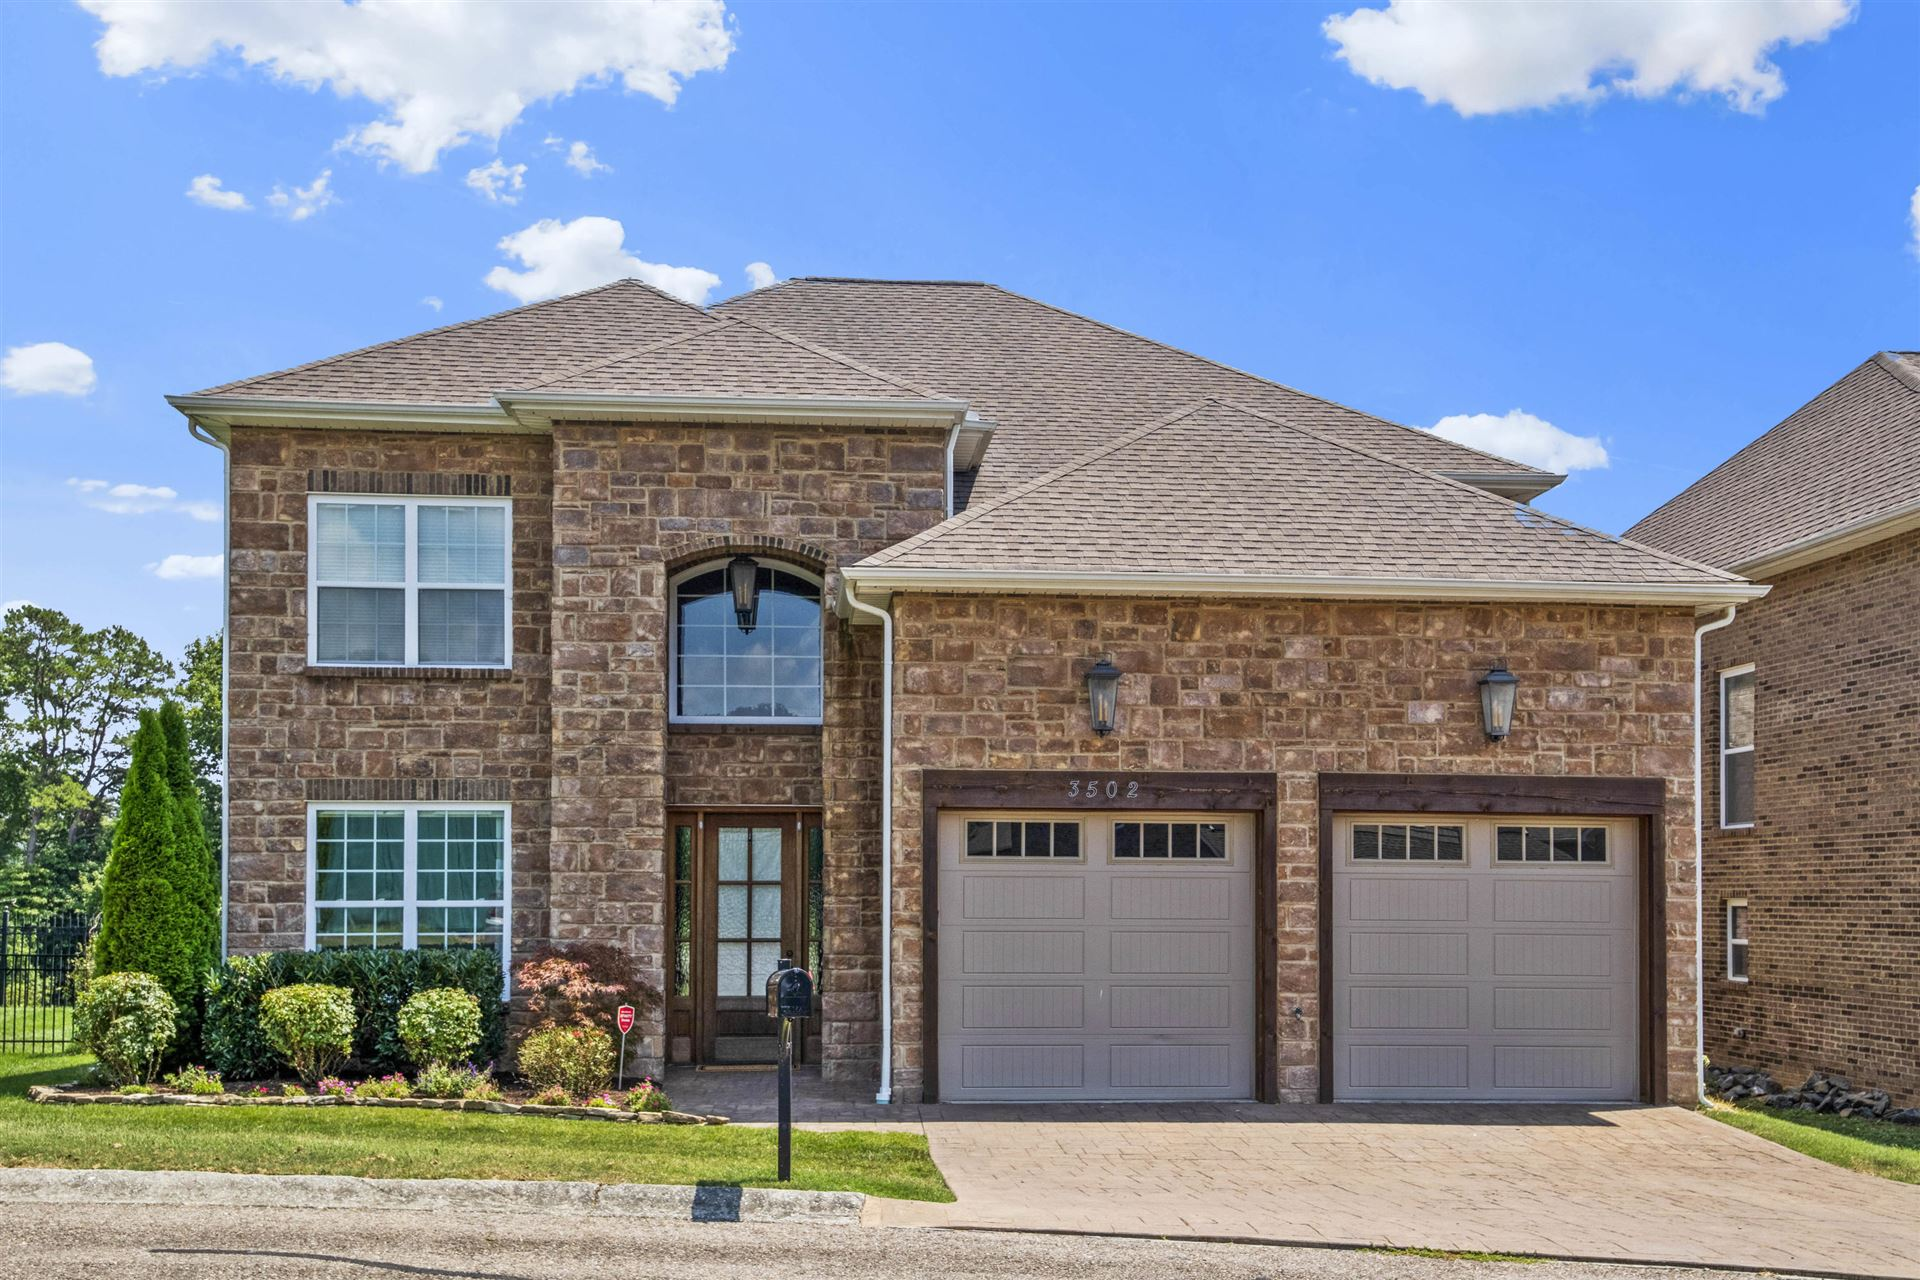 Photo of 3502 Harbor View Way, Knoxville, TN 37920 (MLS # 1162048)